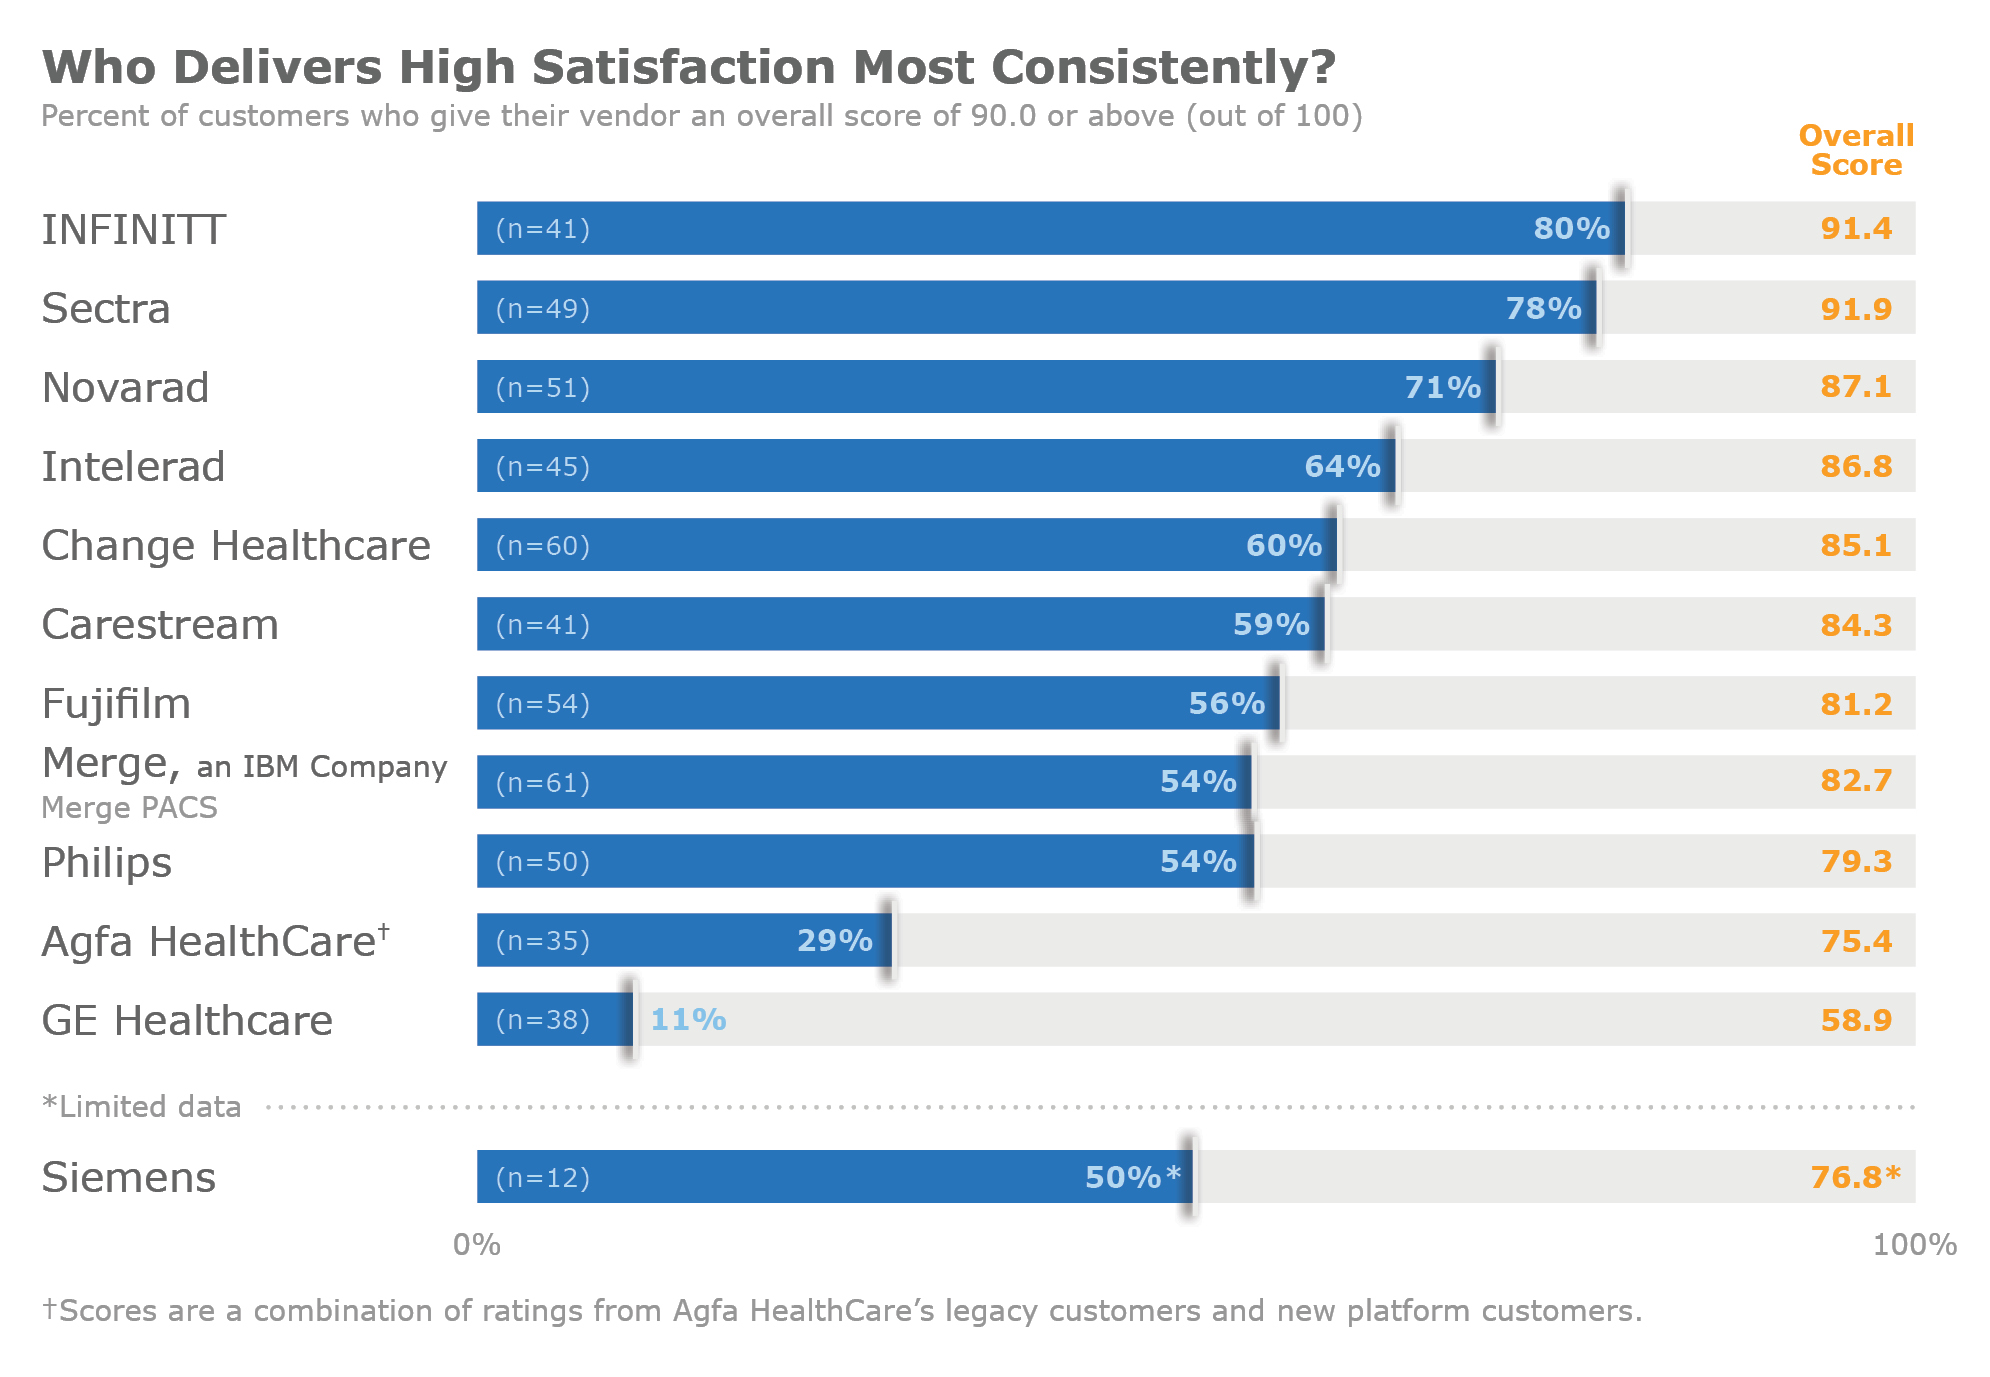 Figure 1: Who Delivers High Satisfaction Most Consistently?